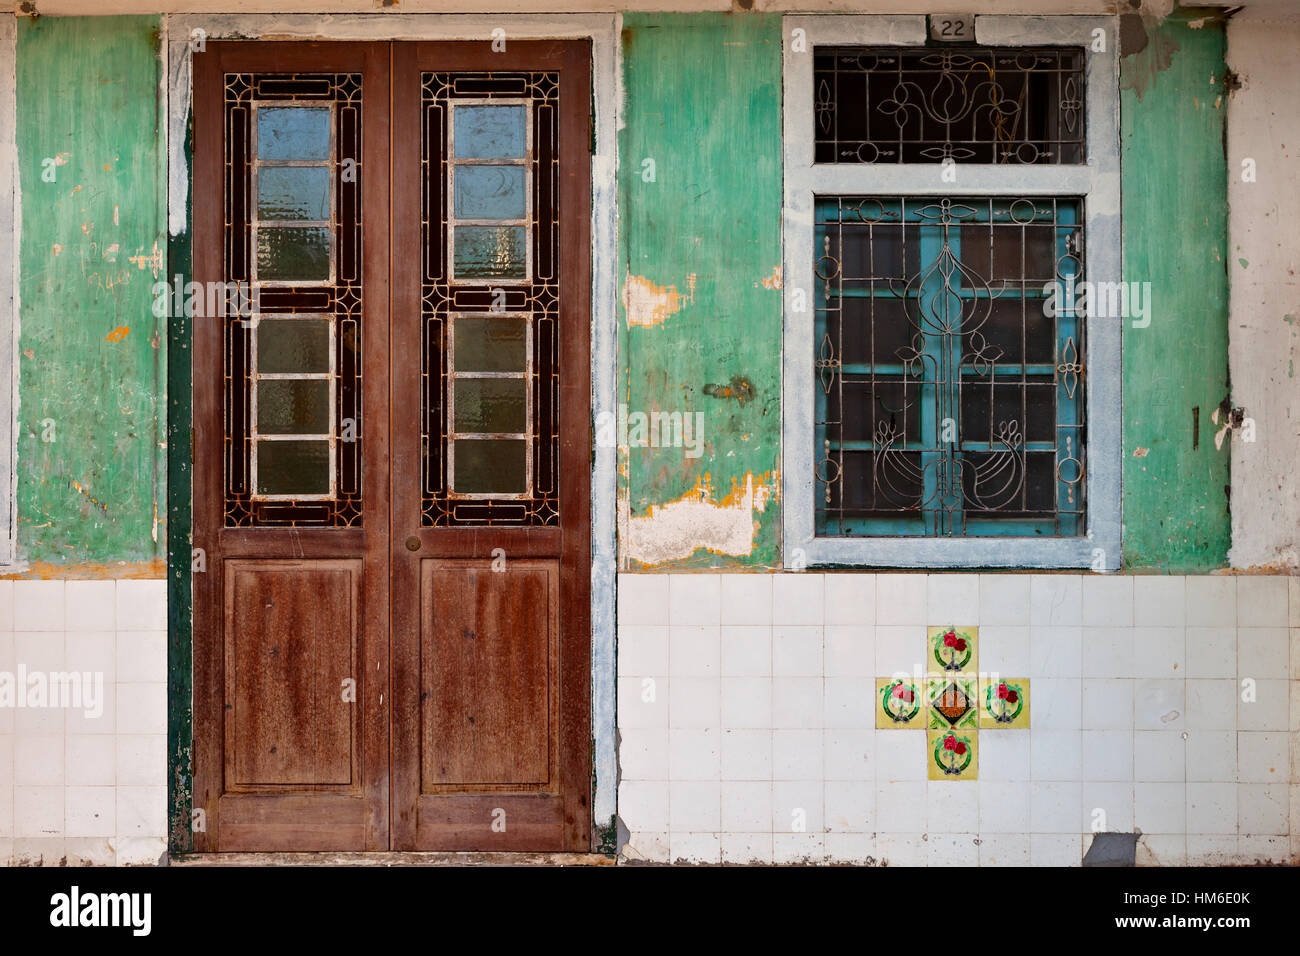 front house door texture. Locked Wooden Front Door And Window Of Traditional Chinese Old House In Georgetown, Penang. Vintage Effect Texture E